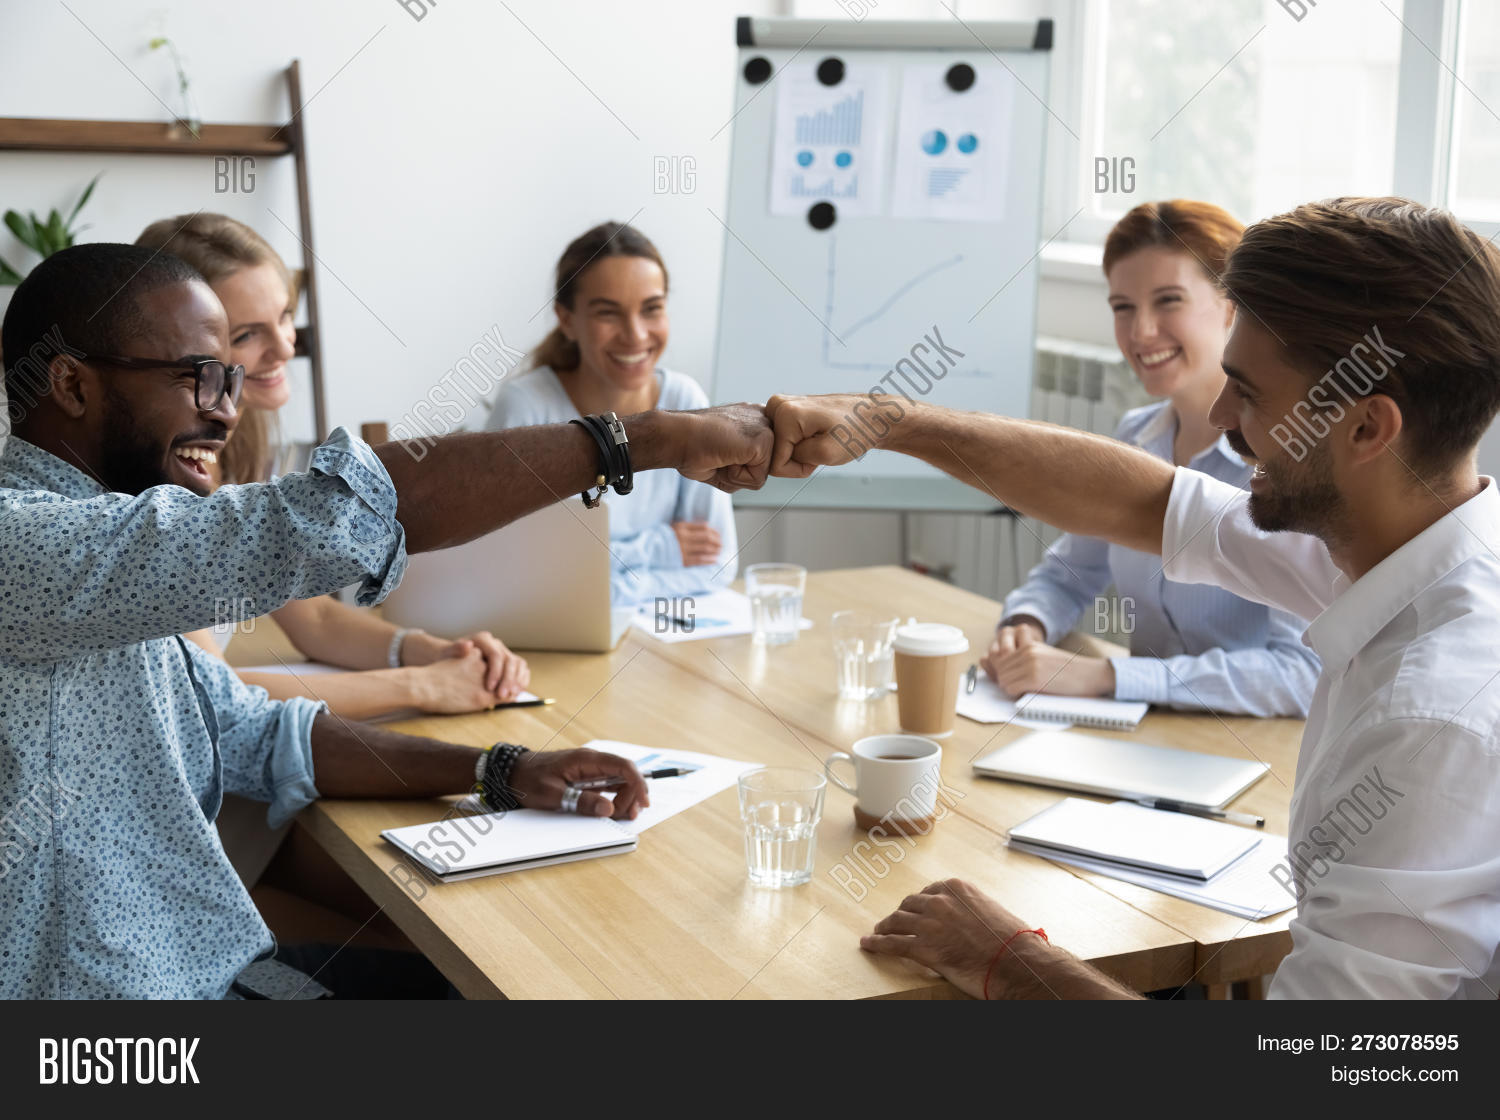 Guys Fist Bumping Congratulating Each Other With Success At Work